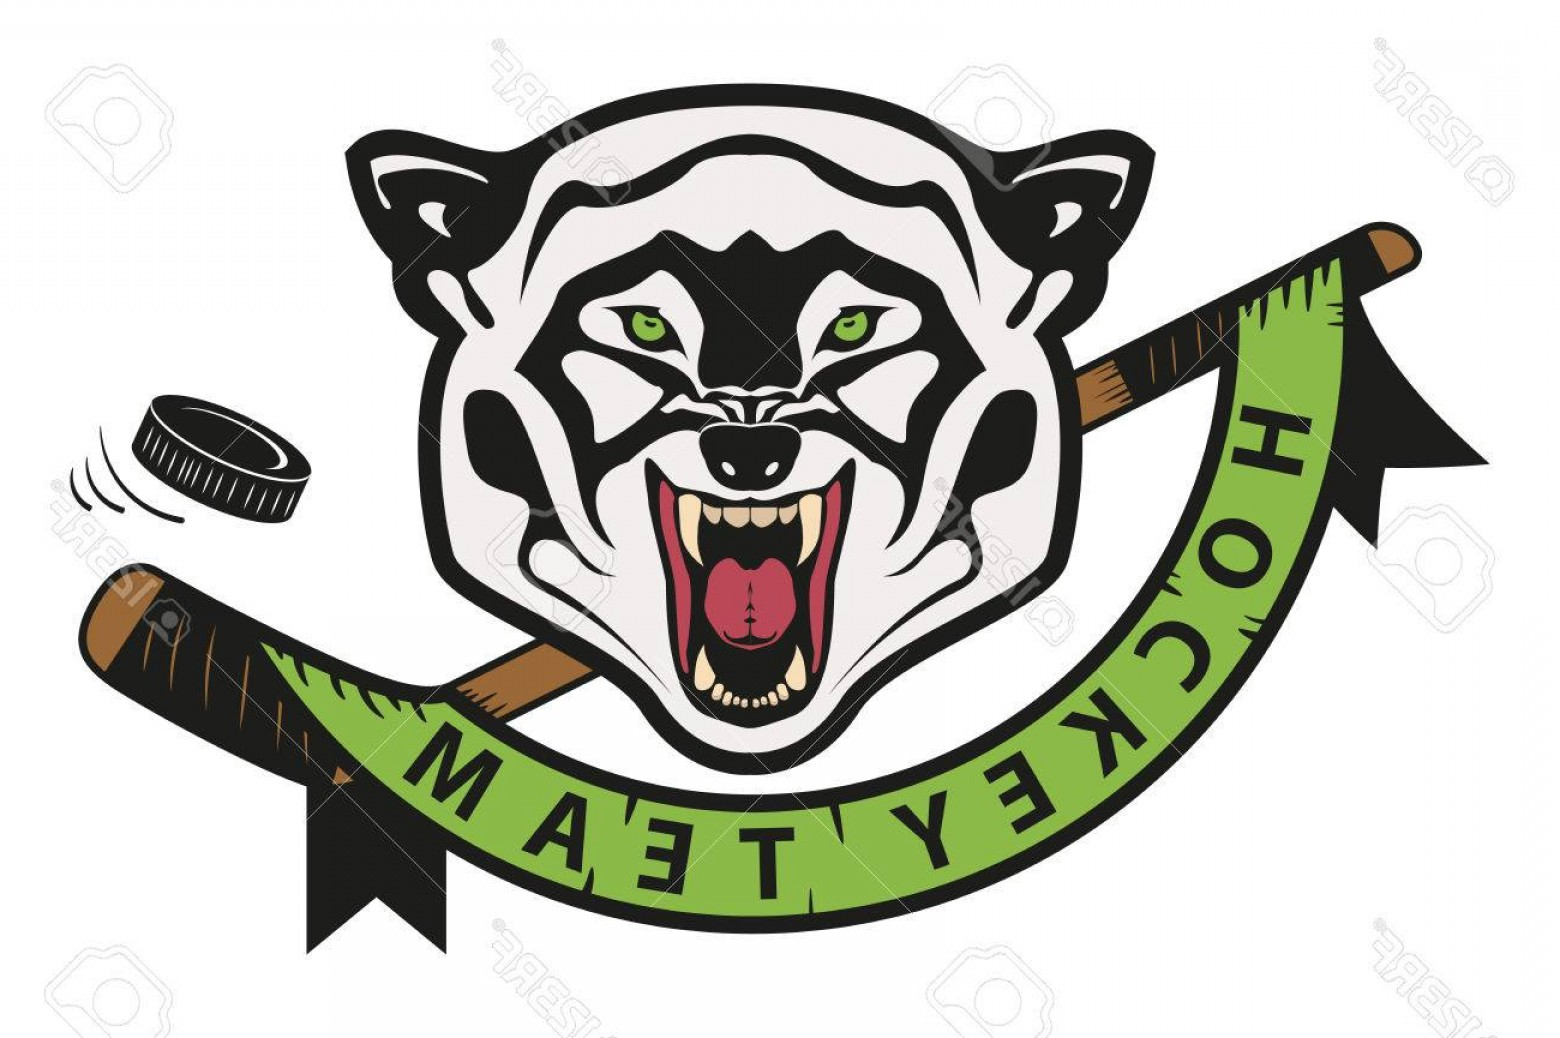 Hockey Teams Logo Vectors: Photostock Vector Angry Wolf Hockey Team Logo Mascot Emblem Of A Wolf On A White Background Layered Vector Illustratio